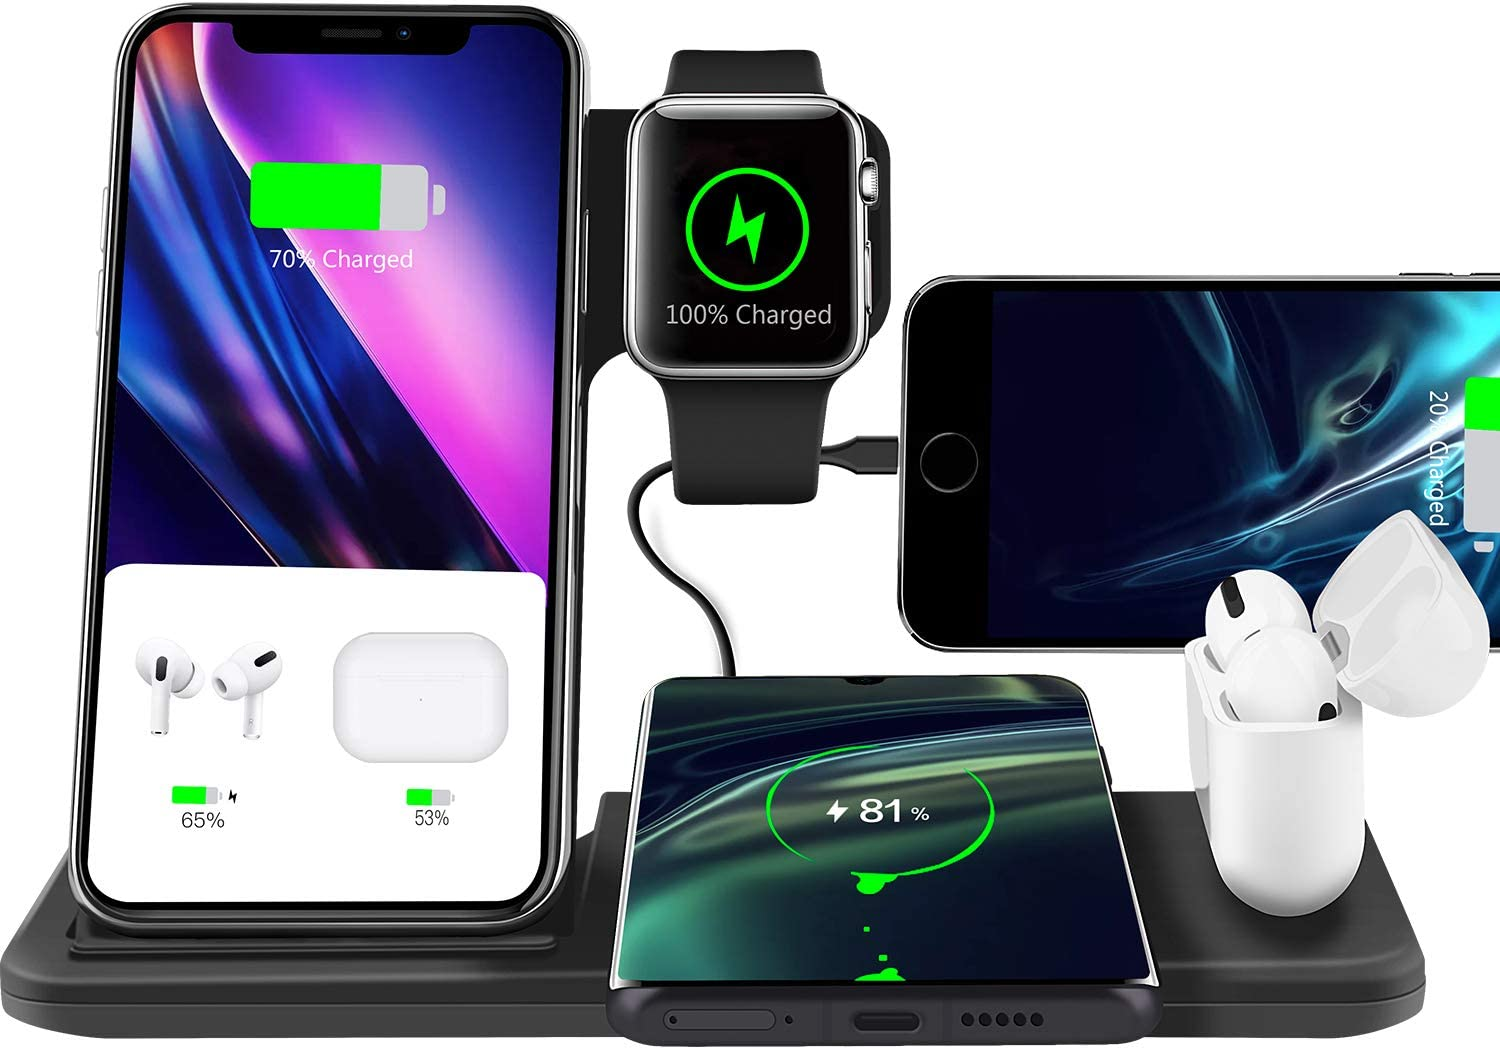 Xoopar Wireless Charger Stand, 5 in 1 Fast Wireless Charging Dock Station Compatible with Apple Watch 5 6/Airpods Pro/iPhone 11 12 Mini Pro Max SE XR X XS/iWatch/Qi-Certified Phones, 30W